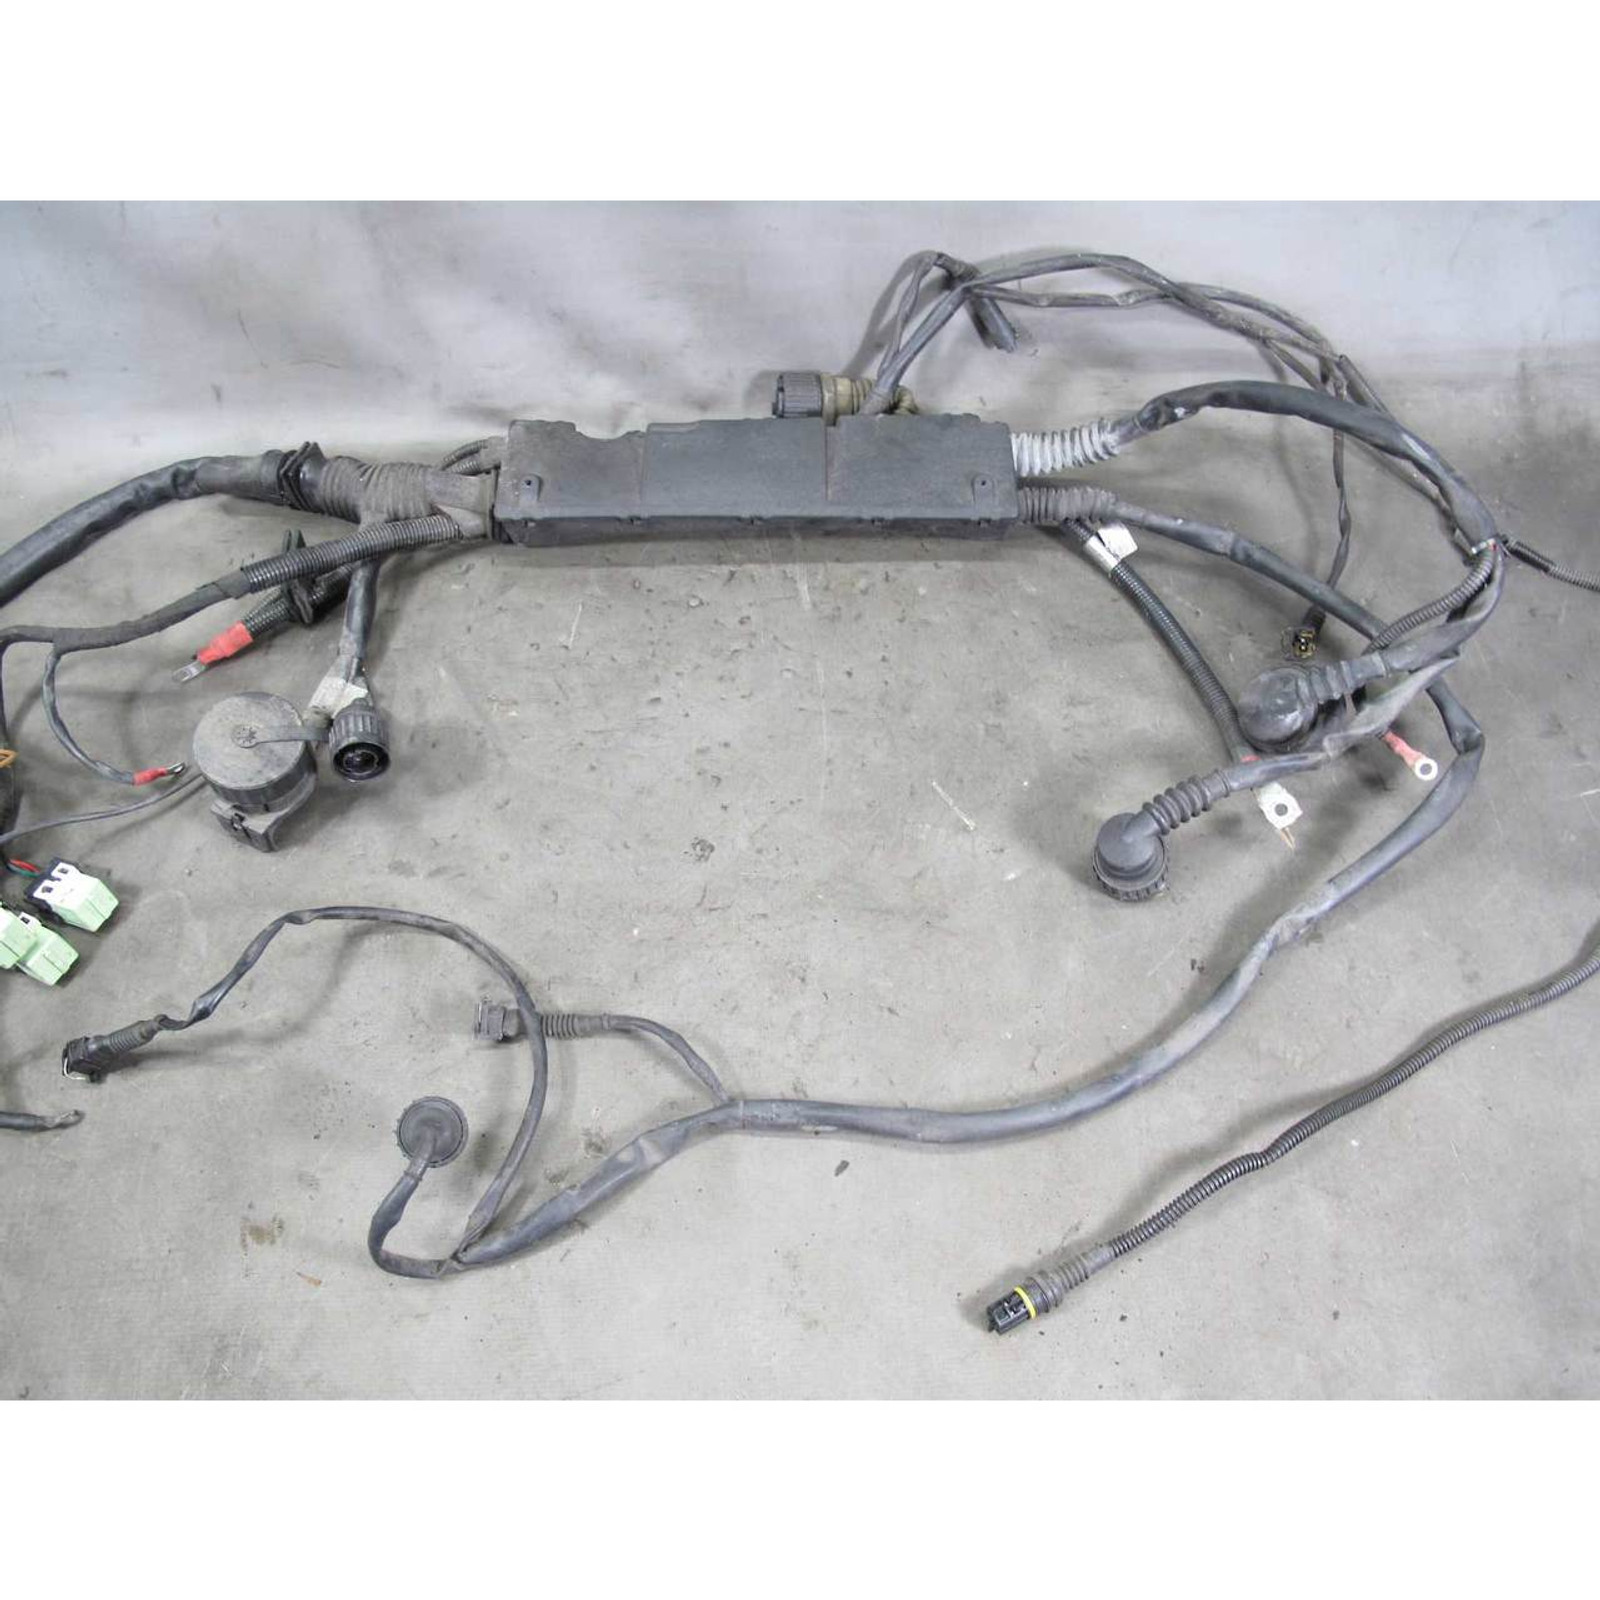 hight resolution of 1996 bmw z3 1 9 roadster m44 4 cyl engine wiring harness used oem 1996 bmw